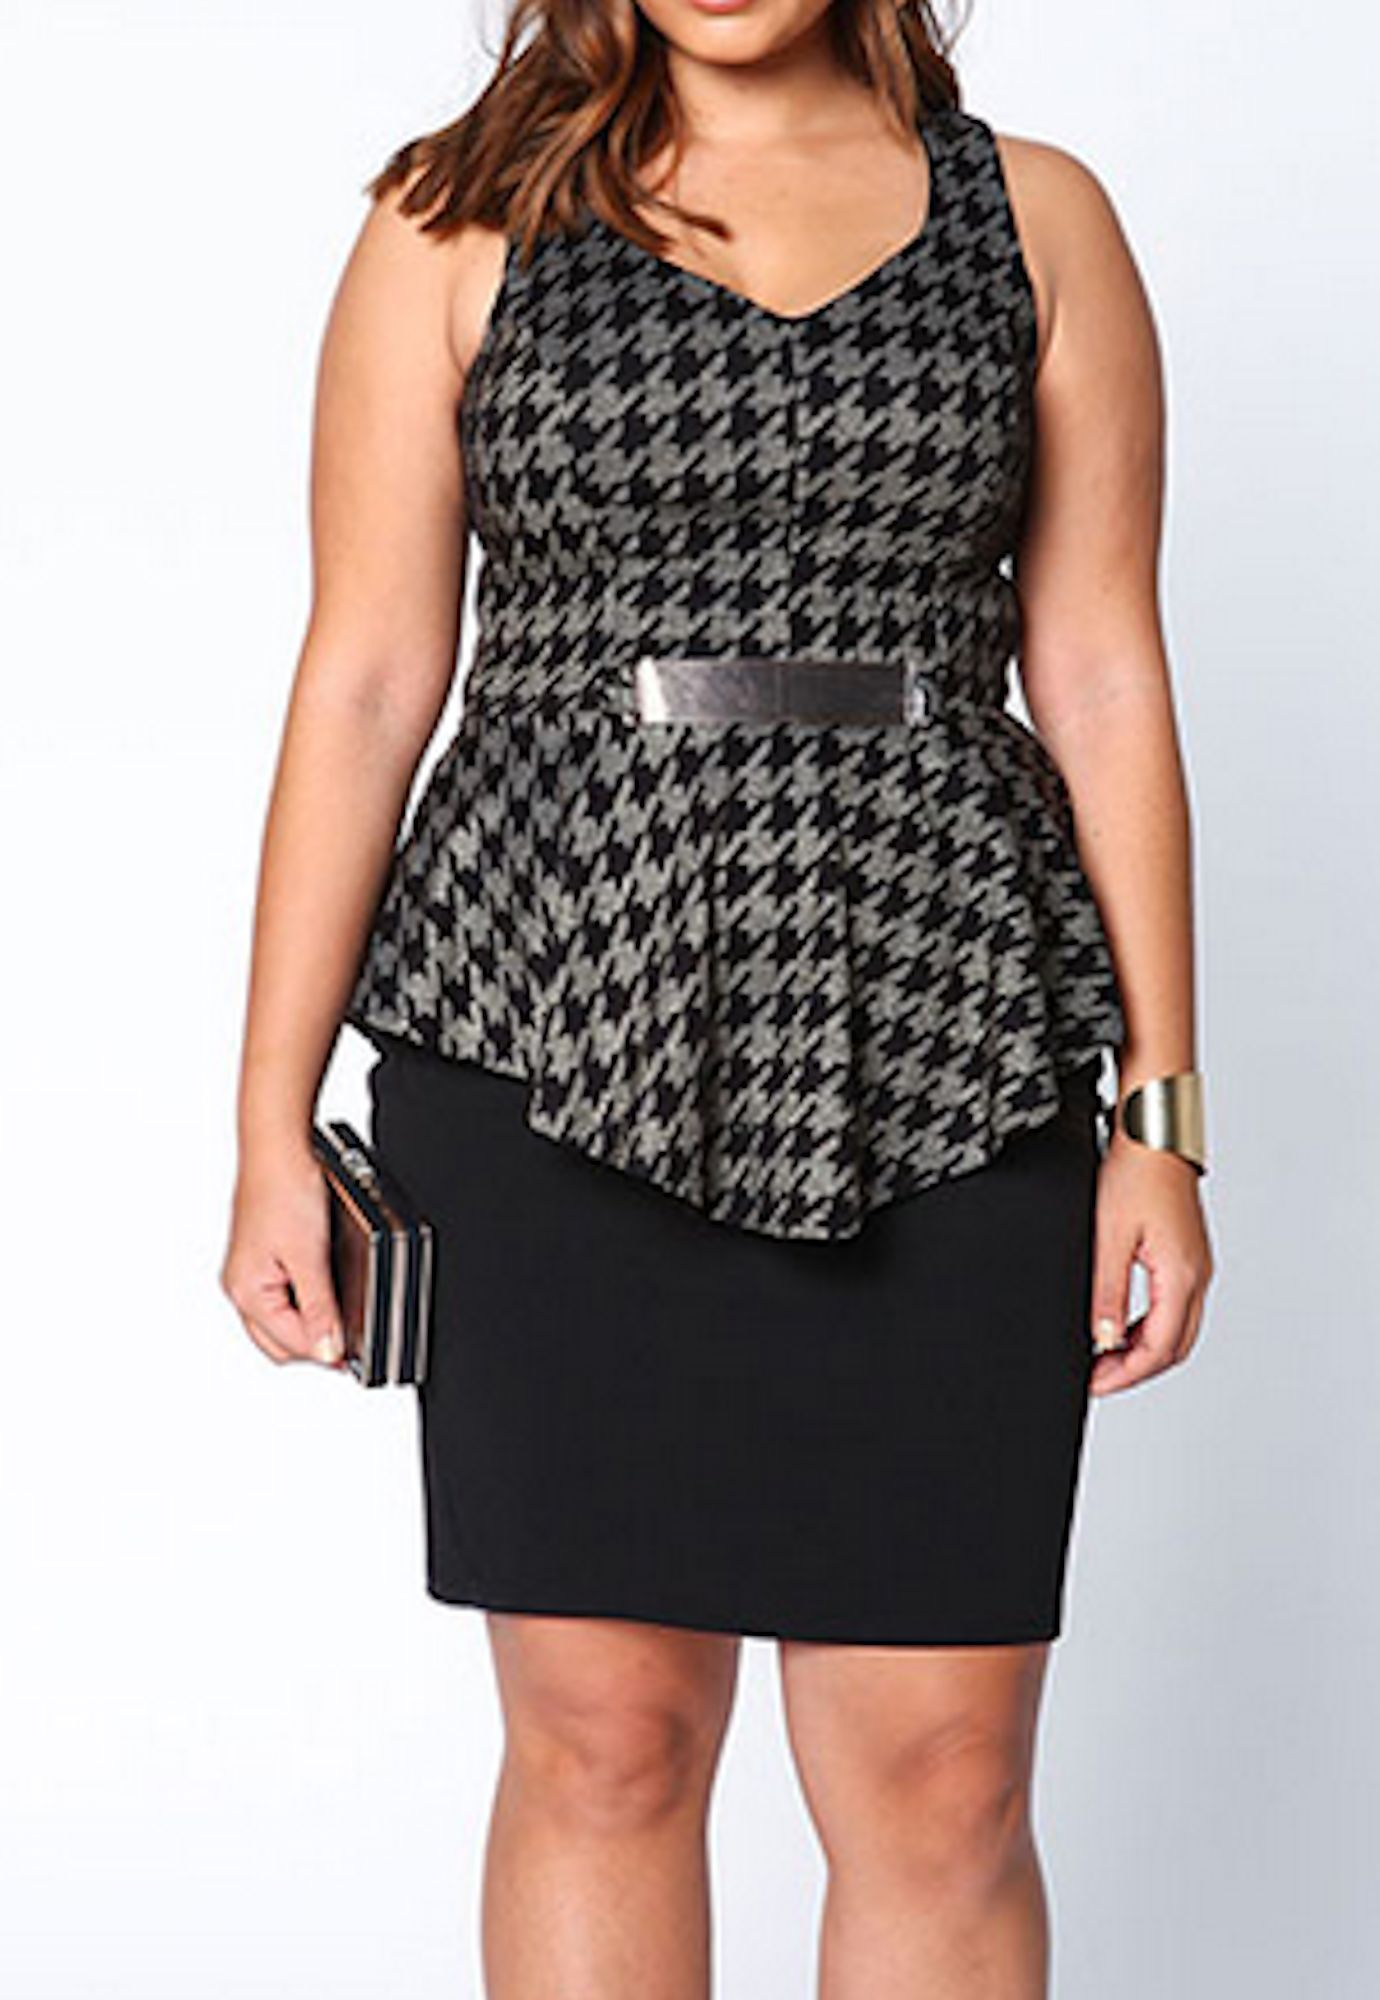 Plus Size Peplum Dress in Black